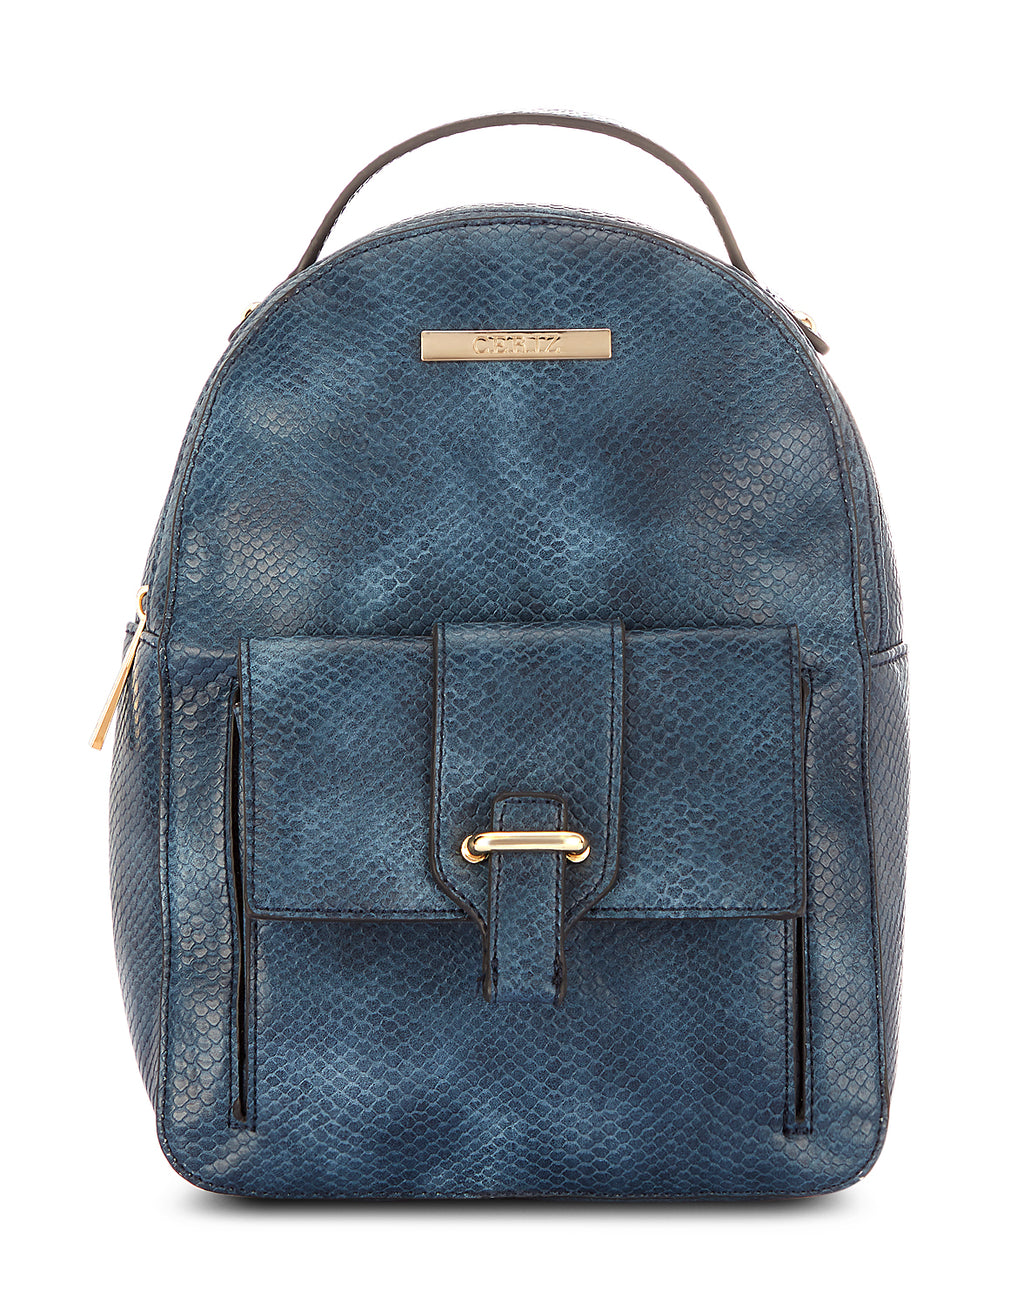 Pommelraie Navy Zip Closure Backpack